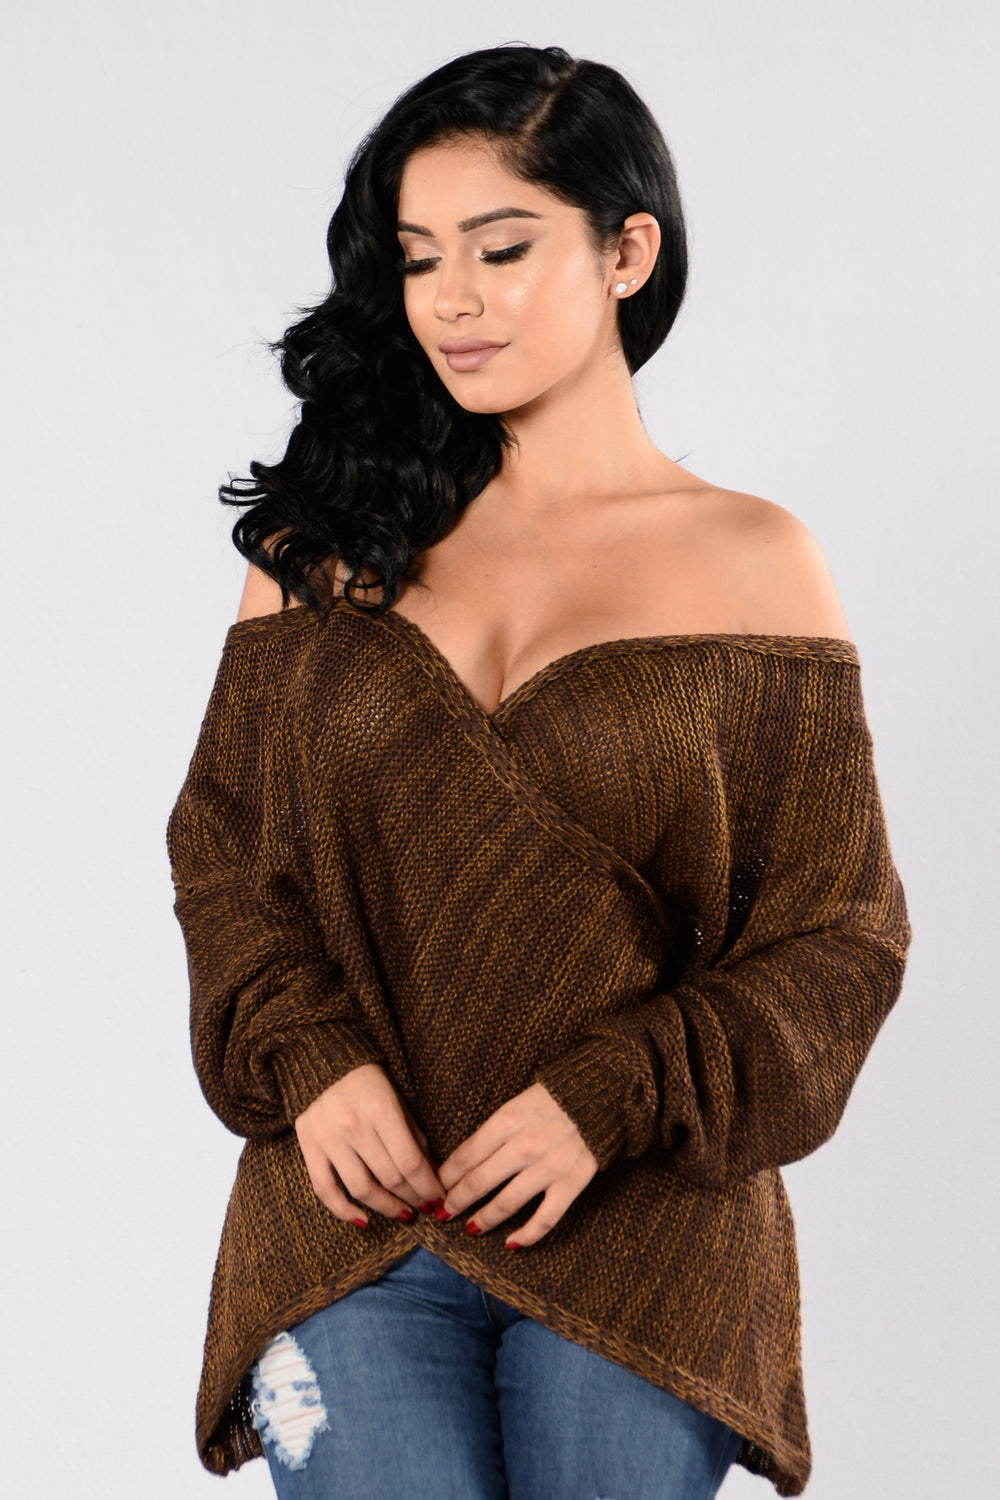 Make You Wanna Sweater - Brown